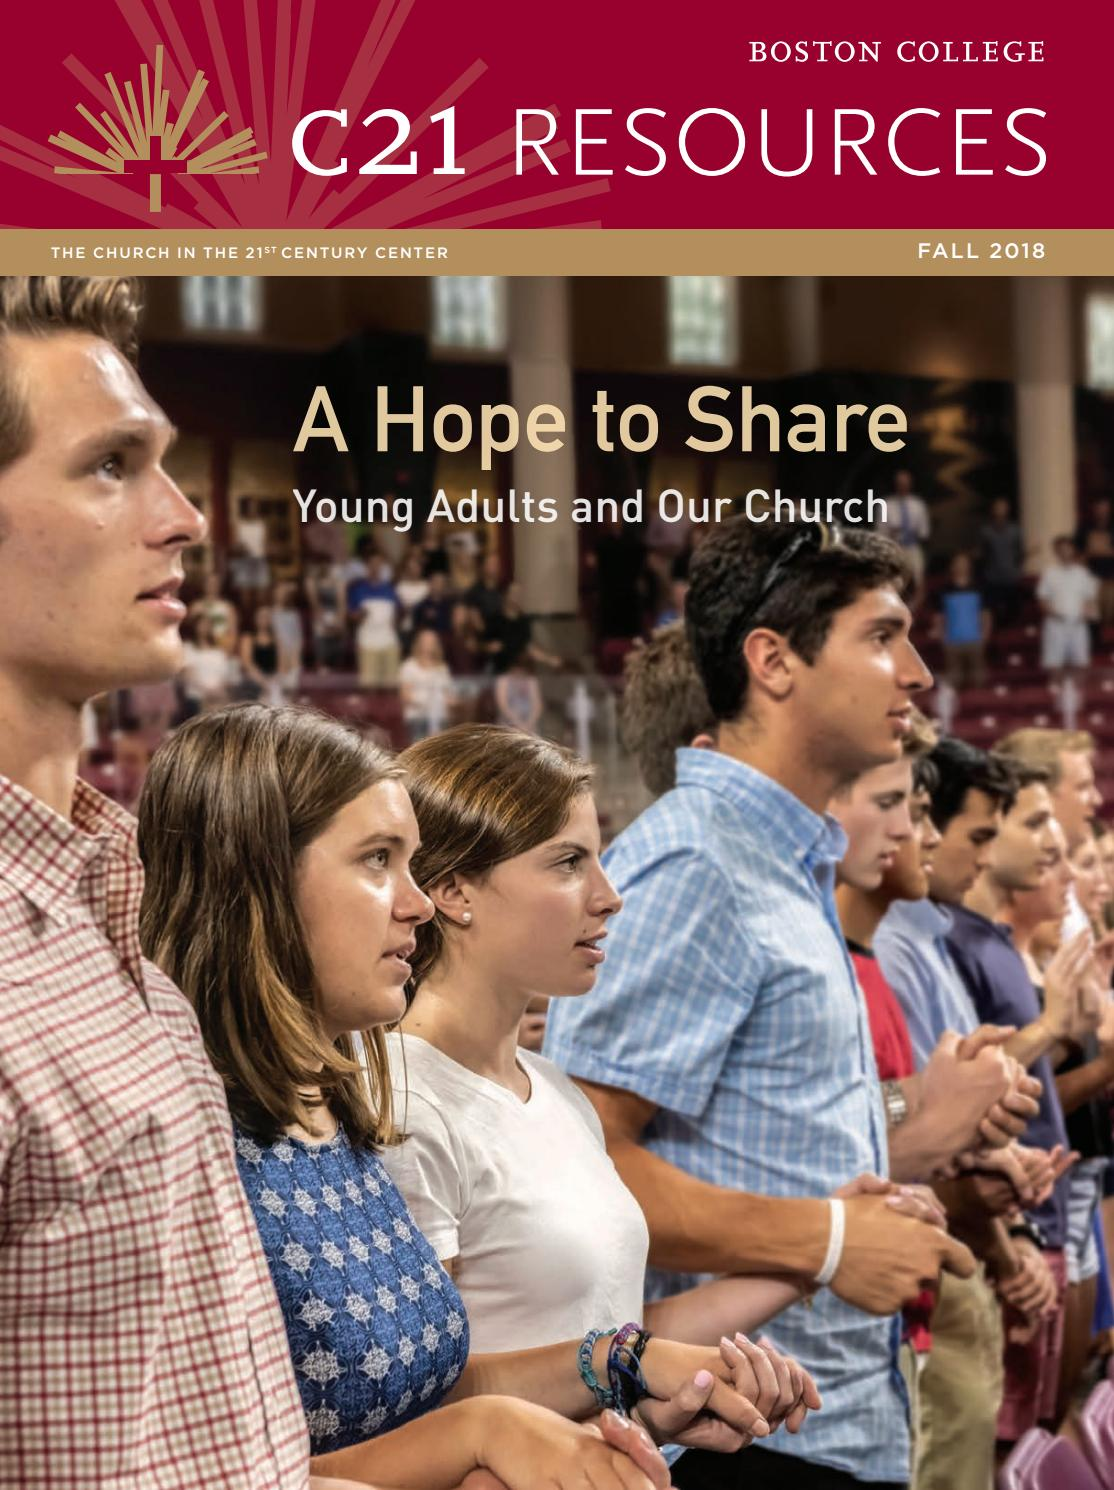 A Hope to Share: Young Adults and Our Church by The Church in the 21st  Century Center at Boston College - issuu